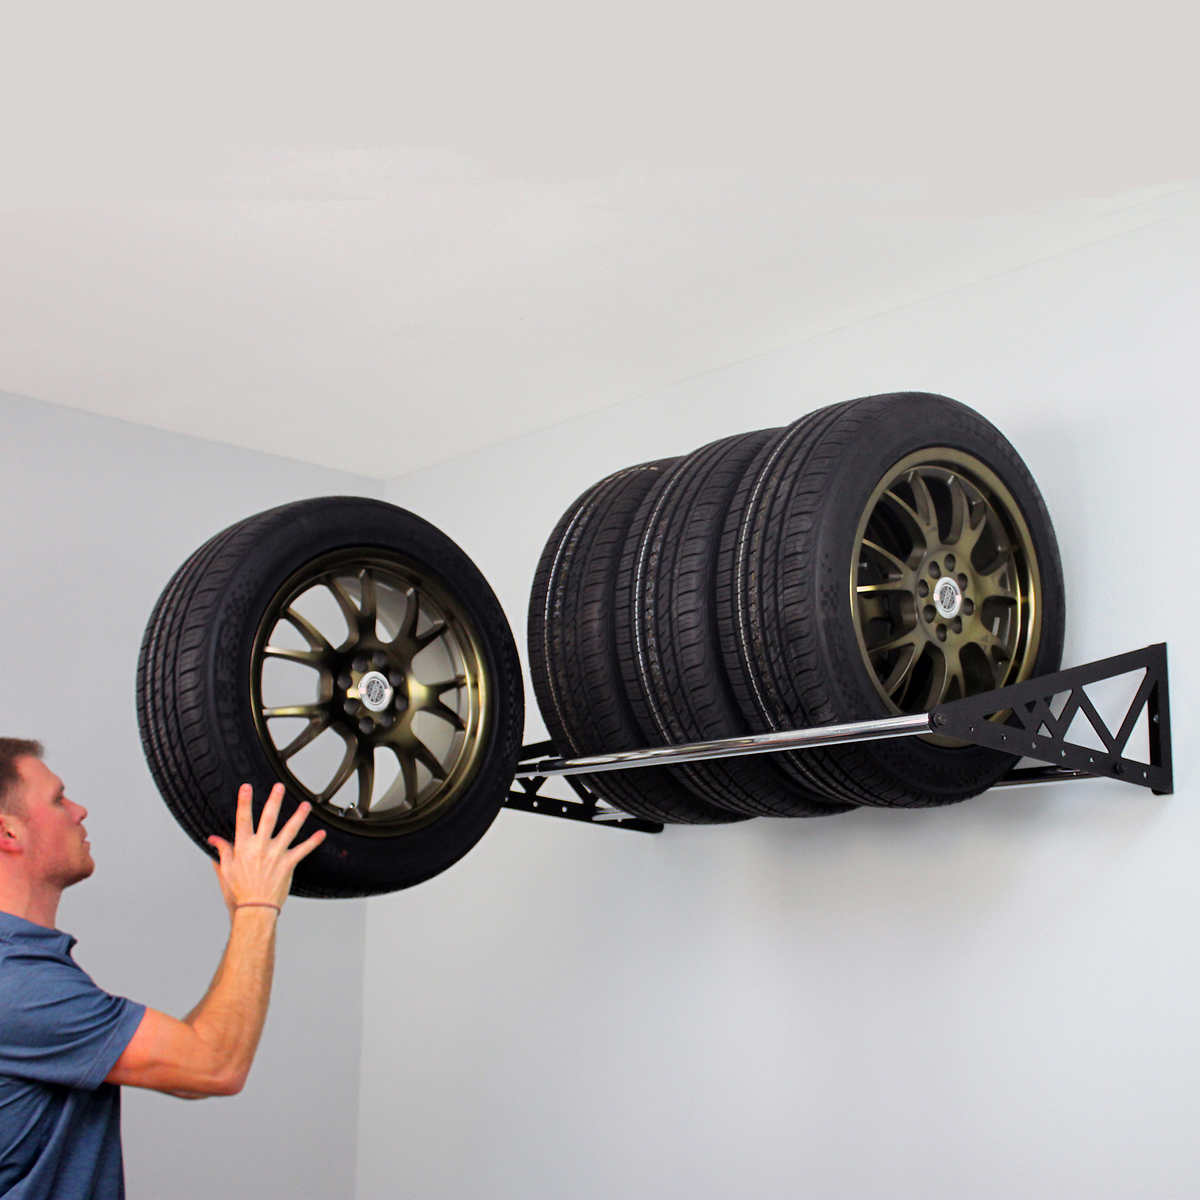 400 lbs wall mounted tire storage